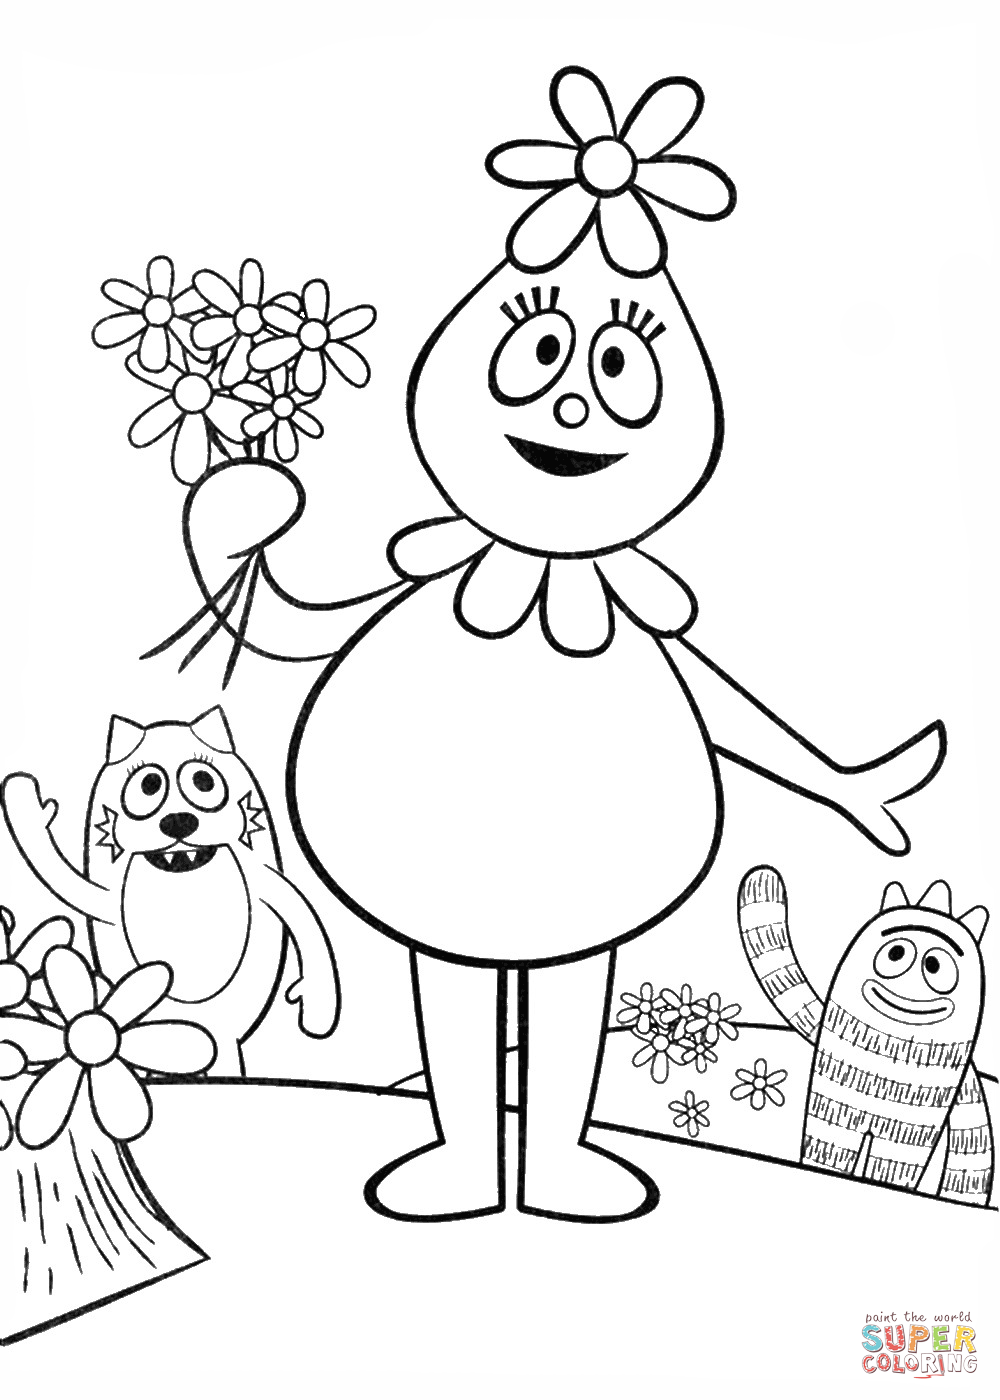 foofa coloring page 29 best images about foofa on pinterest free printable foofa page coloring